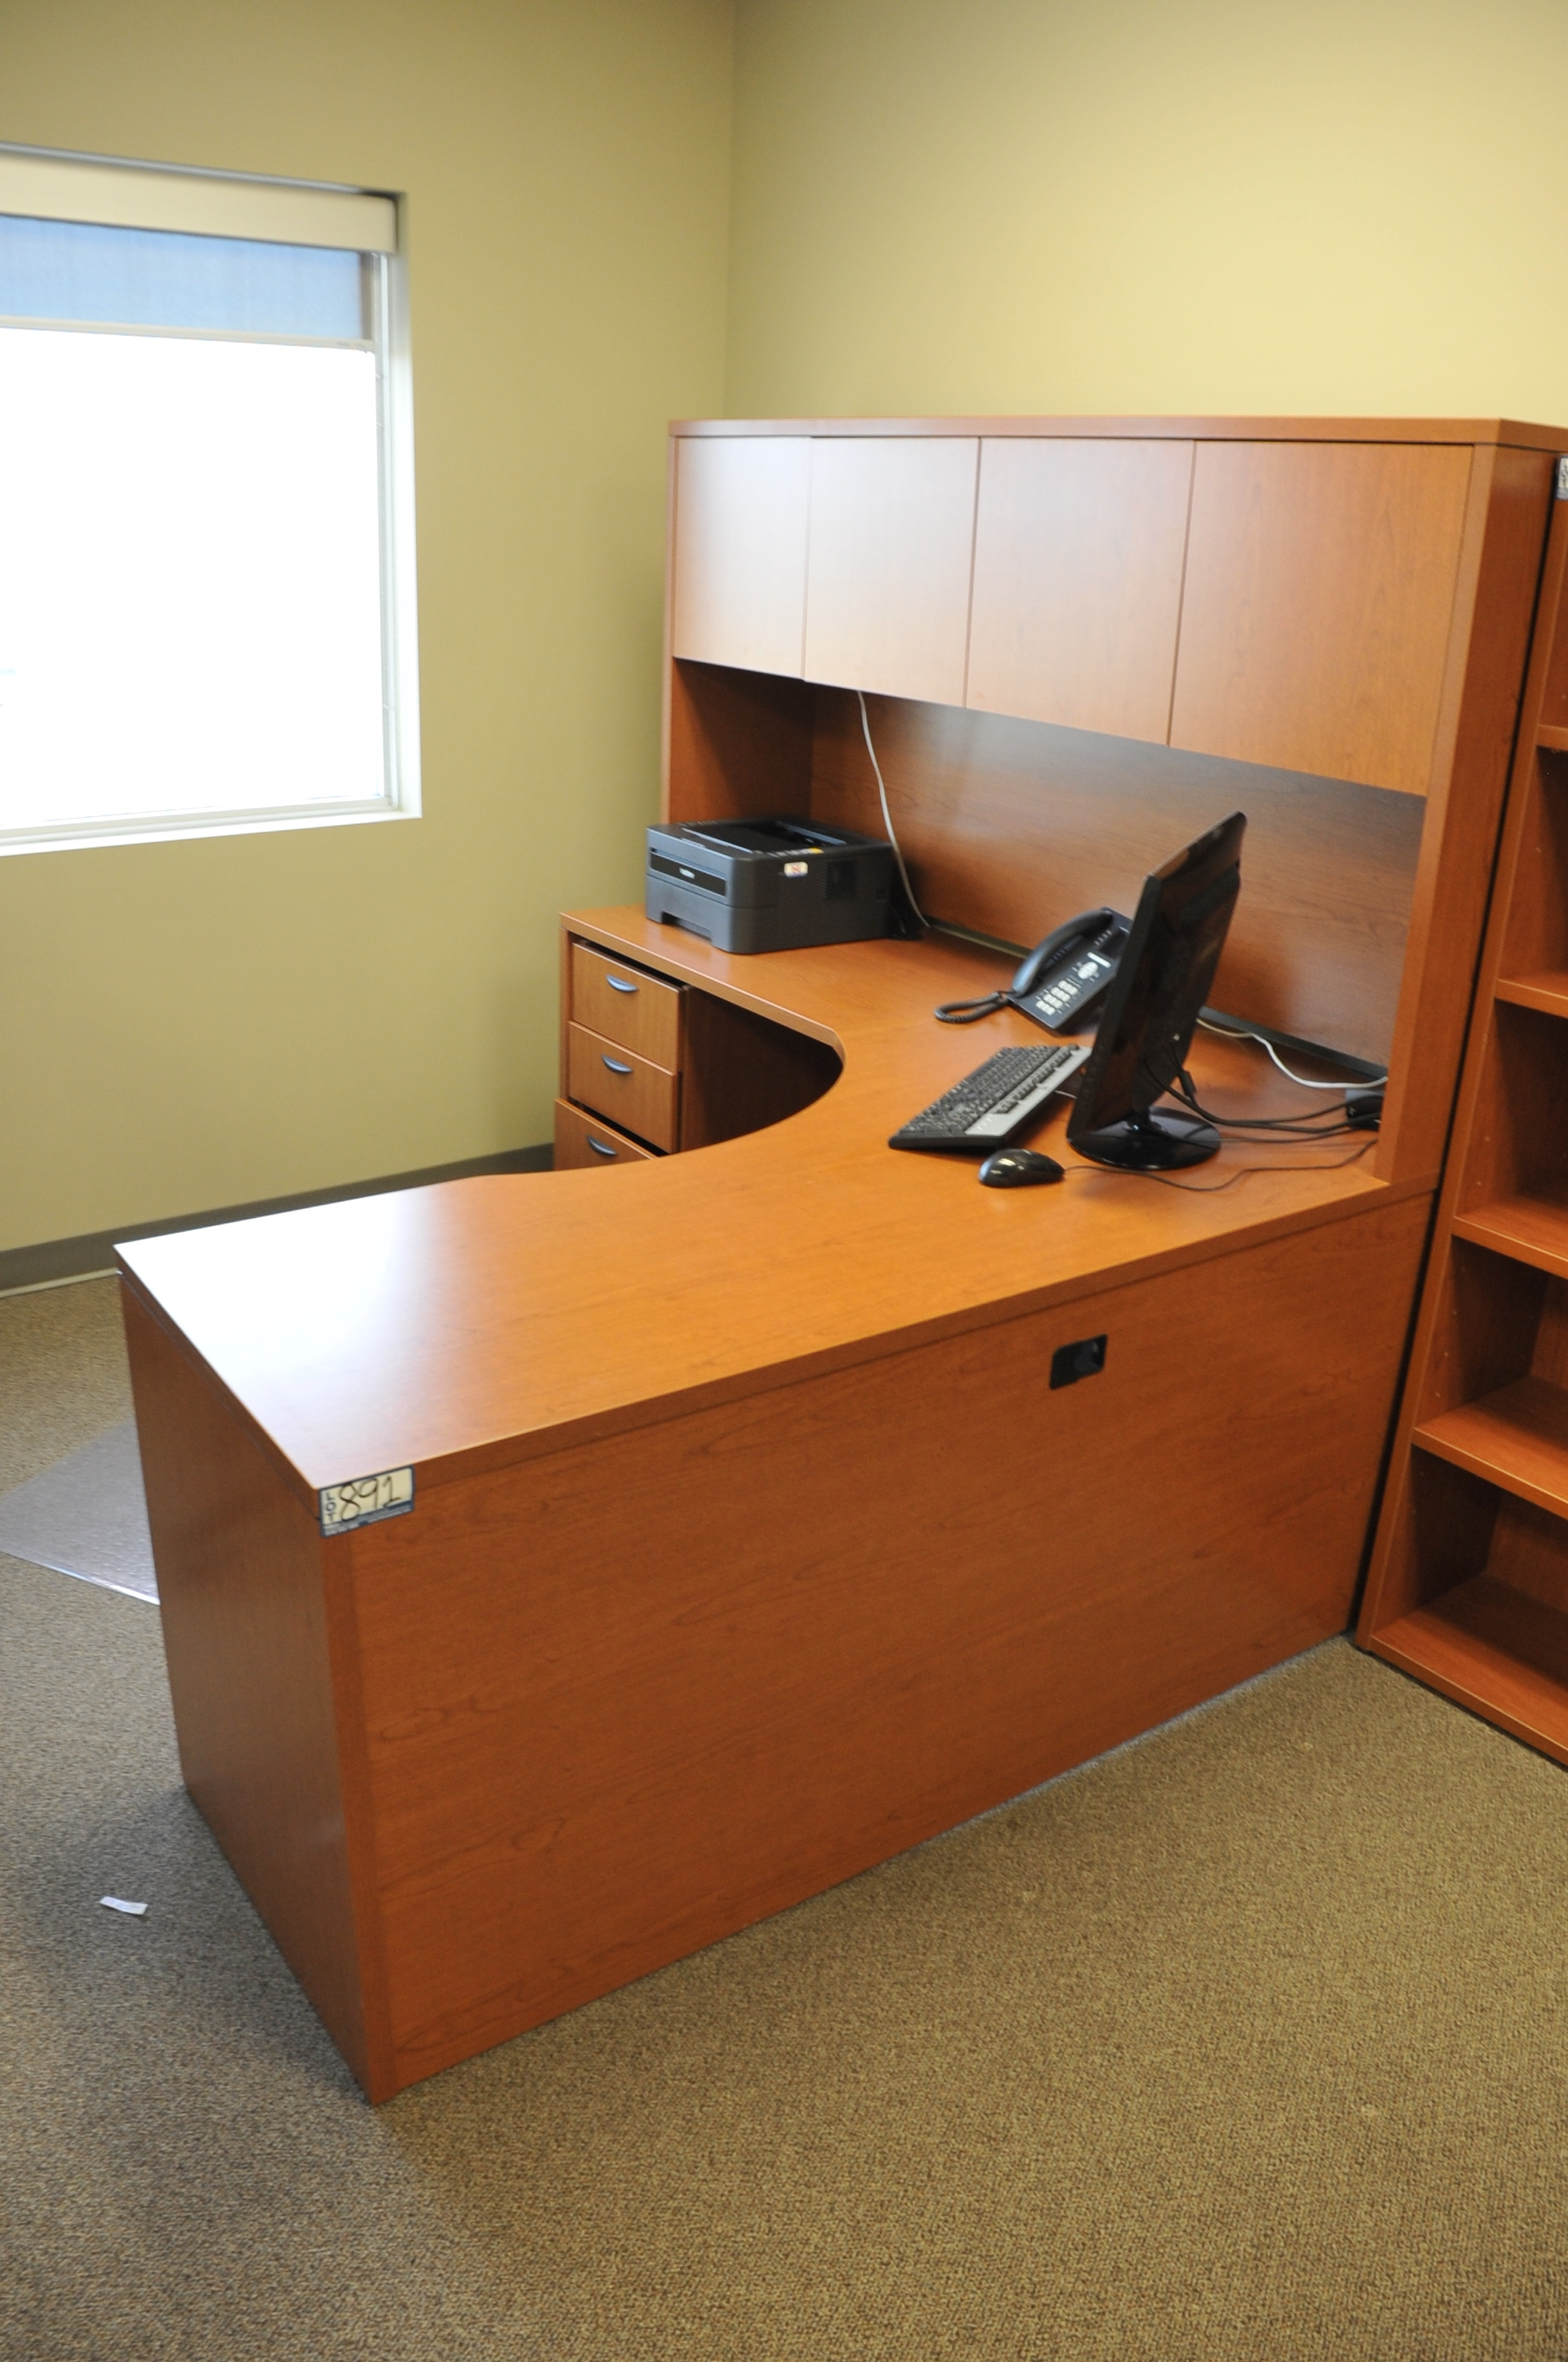 Lot 891 Hon Office Furniture Fixtures Equipment L Shaped Desk With